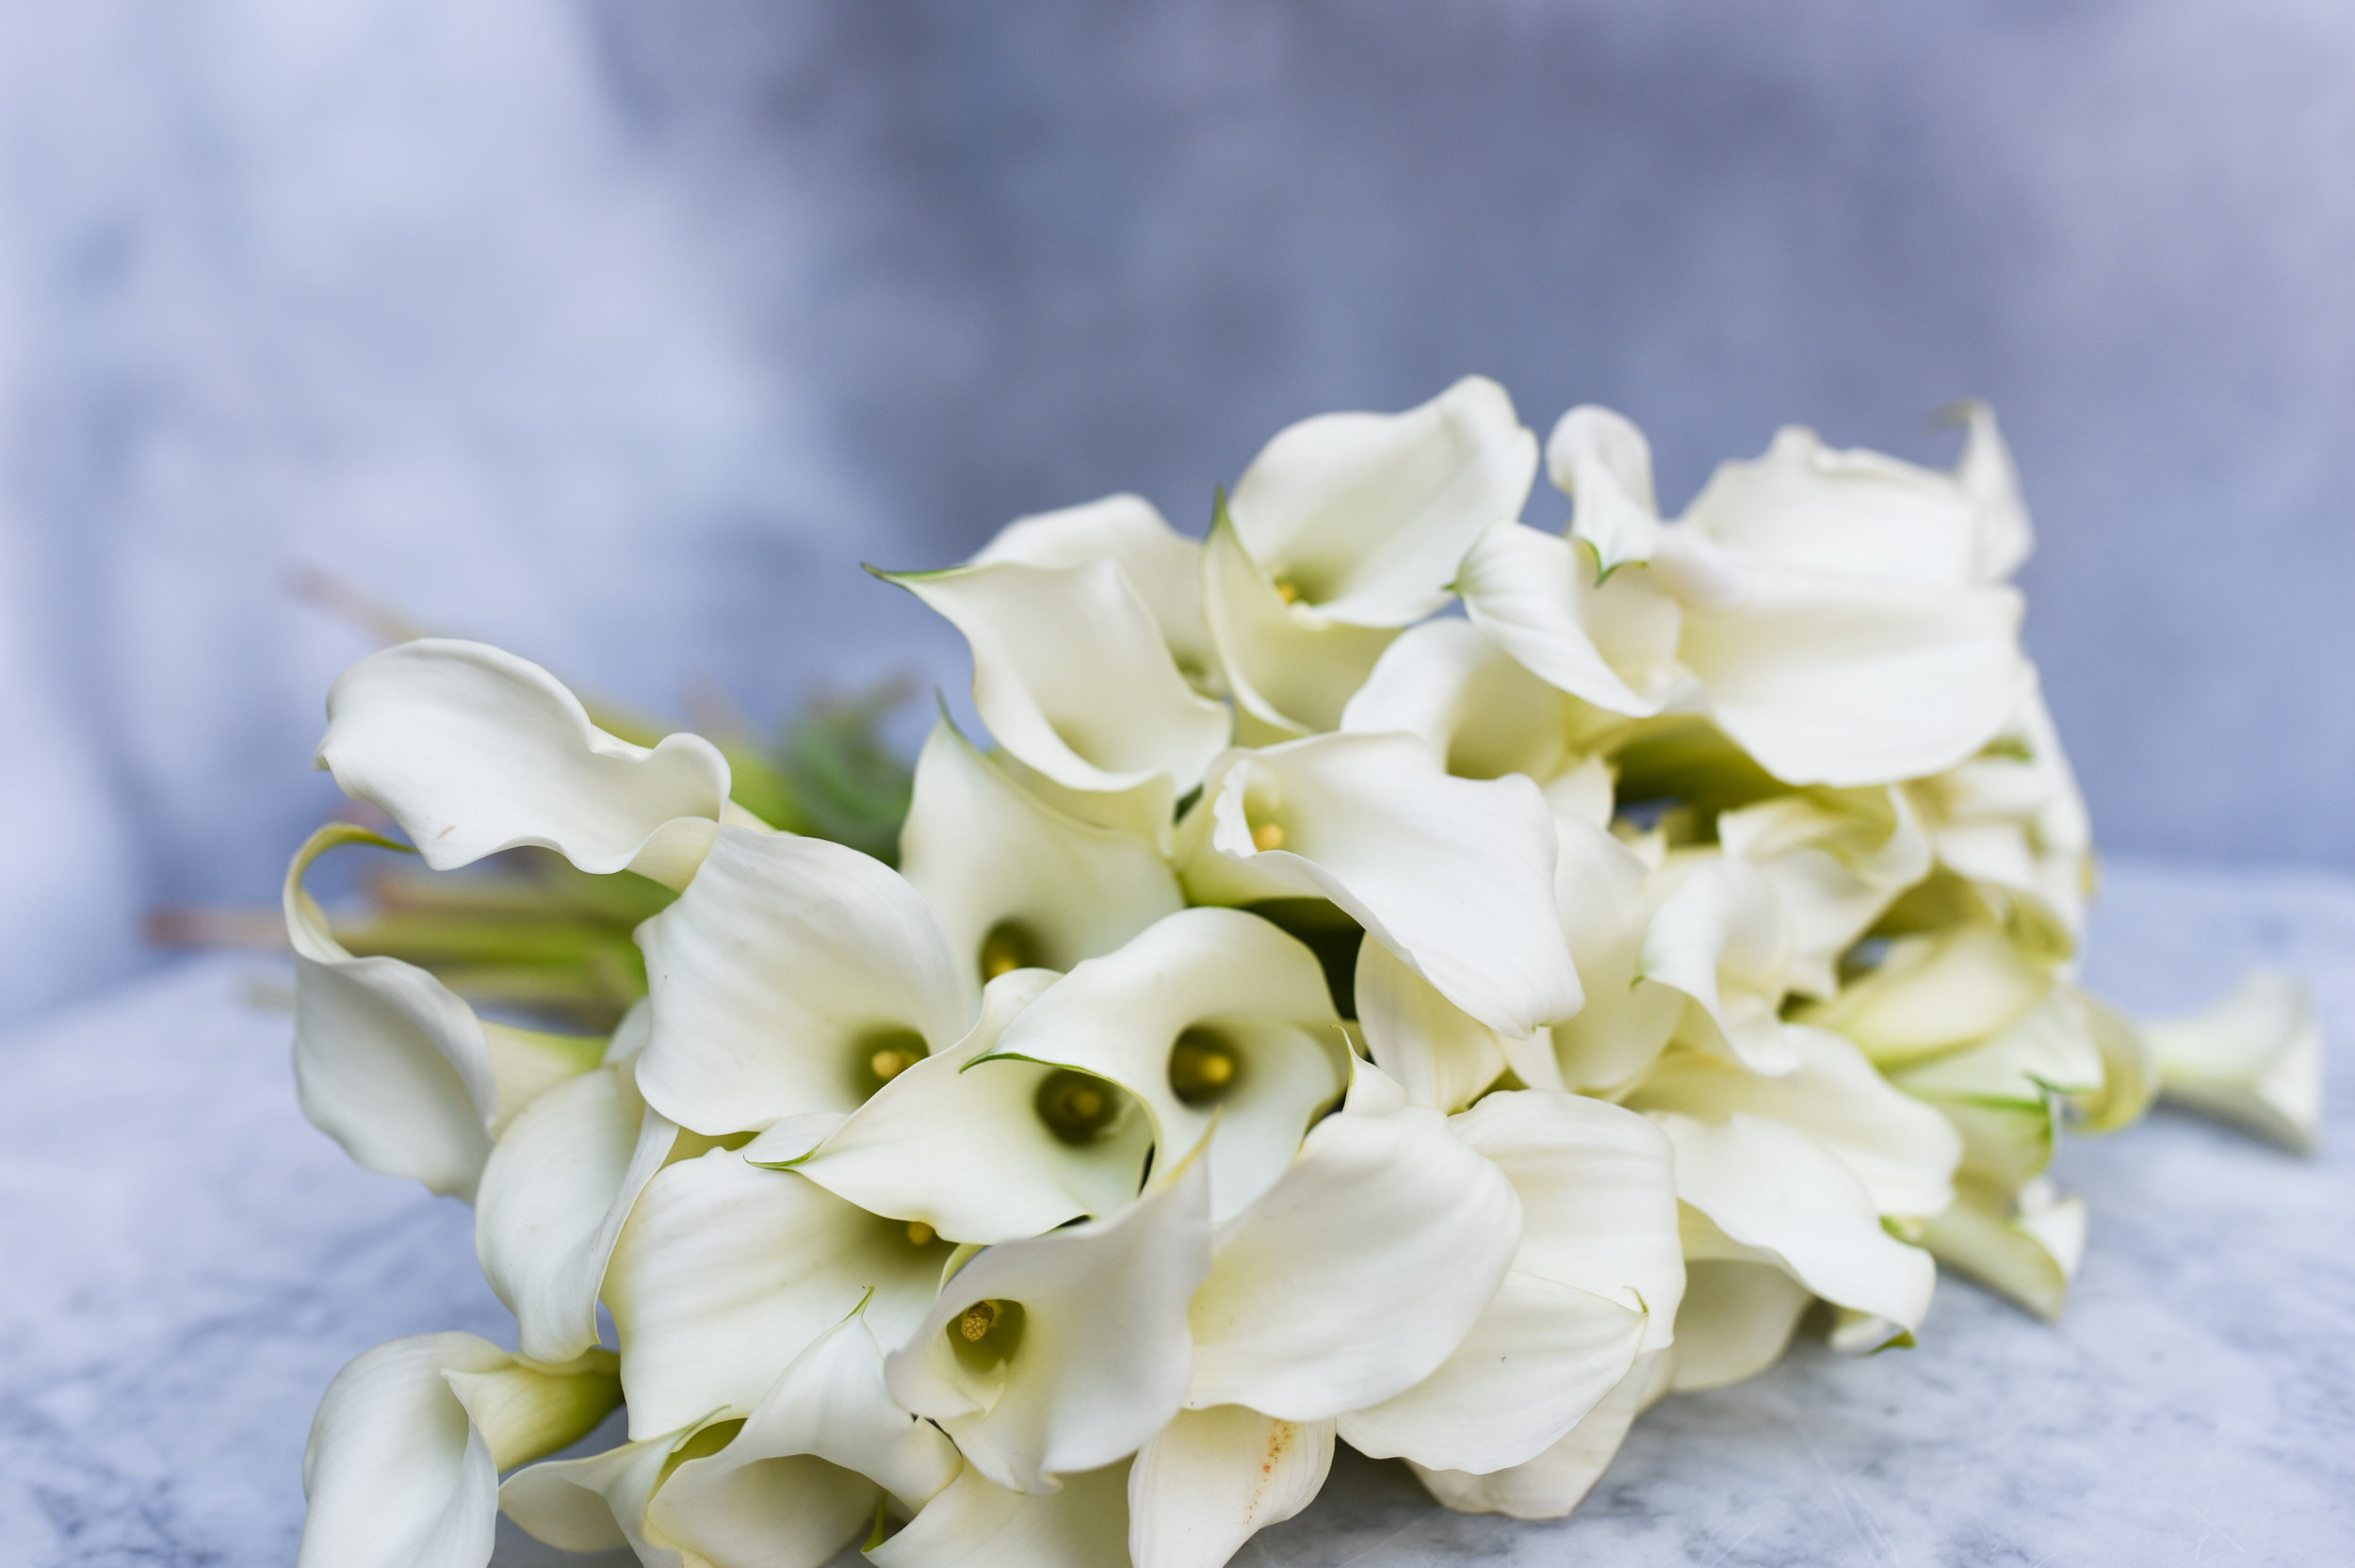 Stunning white calla lilies for winter bridesmaid's bouquet